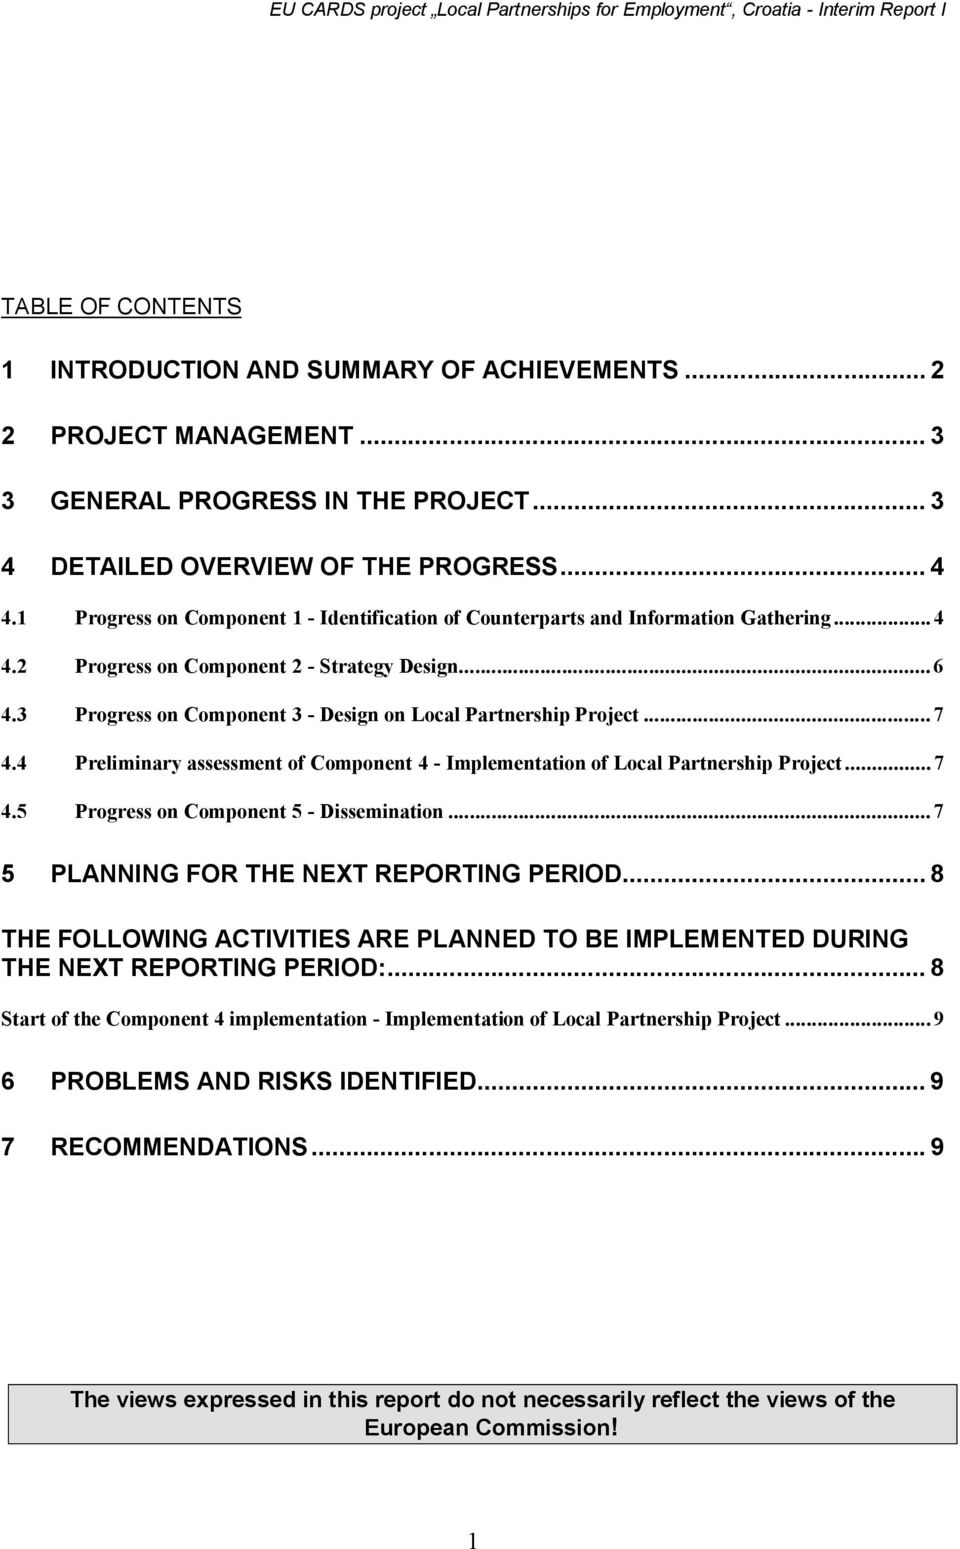 3 Progress on Component 3 - Design on Local Partnership Project... 7 4.4 Preliminary assessment of Component 4 - Implementation of Local Partnership Project... 7 4.5 Progress on Component 5 - Dissemination.